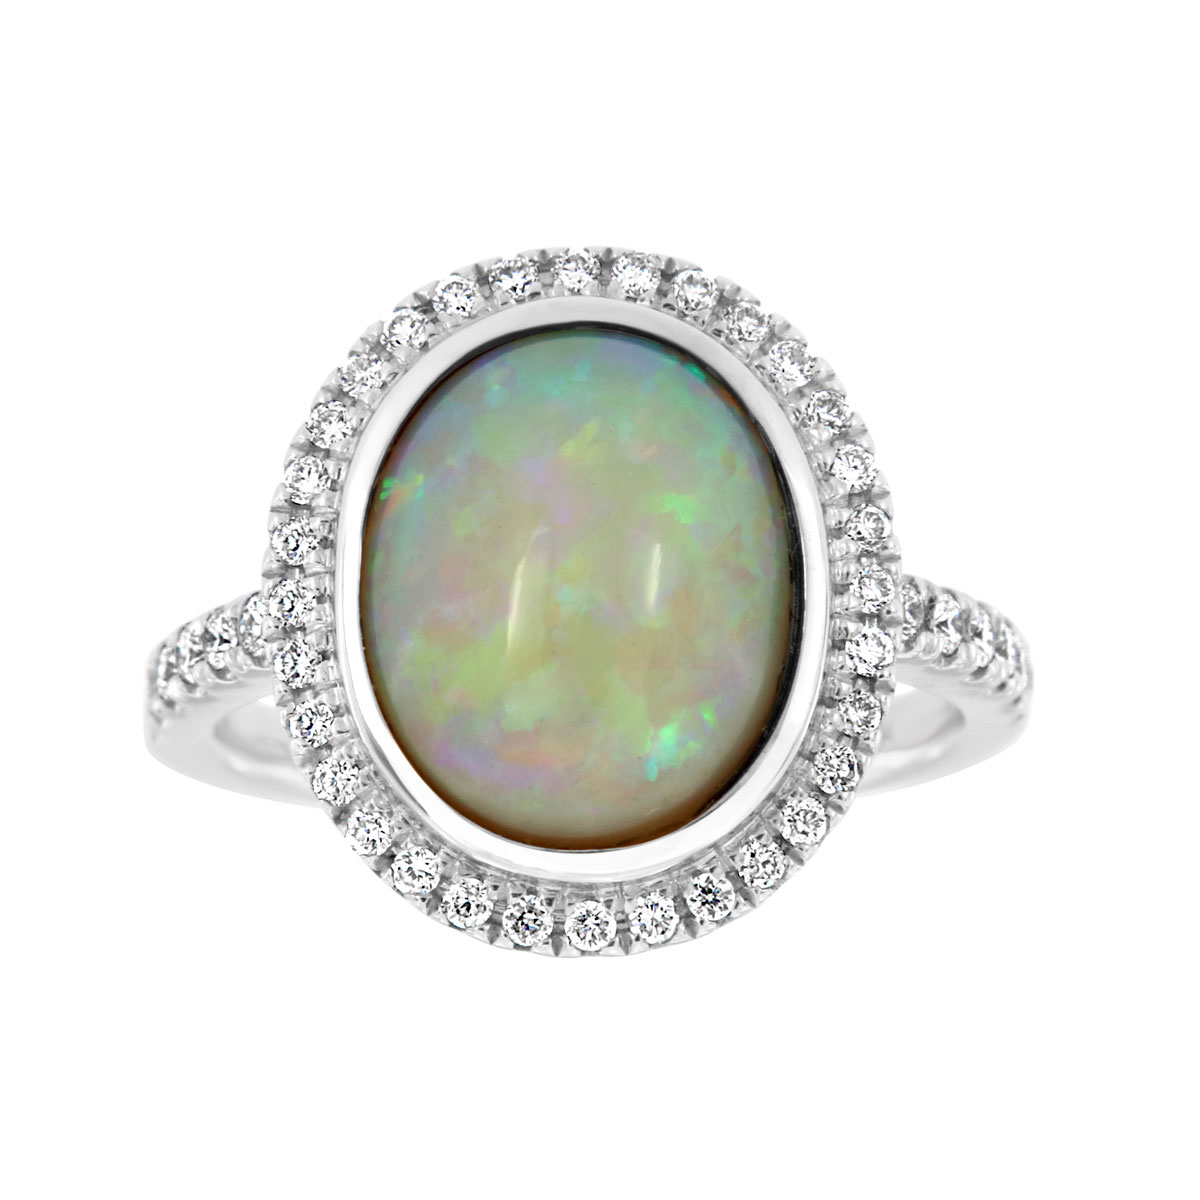 The Art of Jewels – 18K White Gold White Opal Ring (2 2/3 ct .tw)